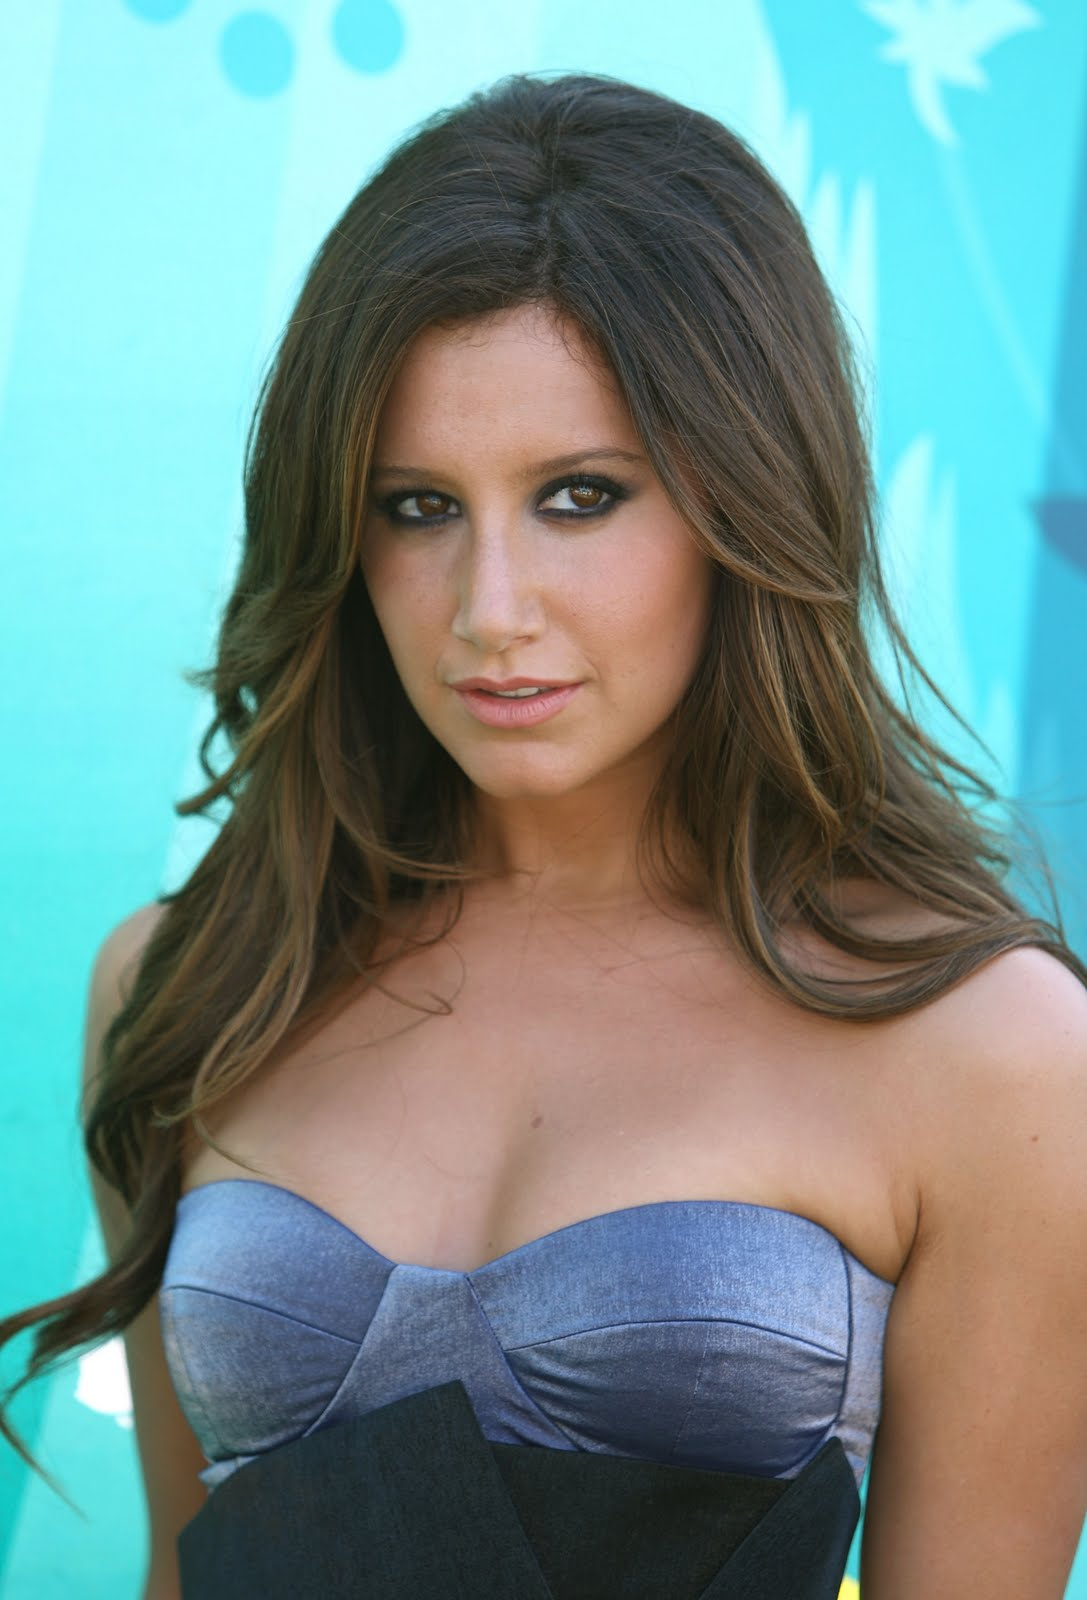 Ashley tisdale nude pic